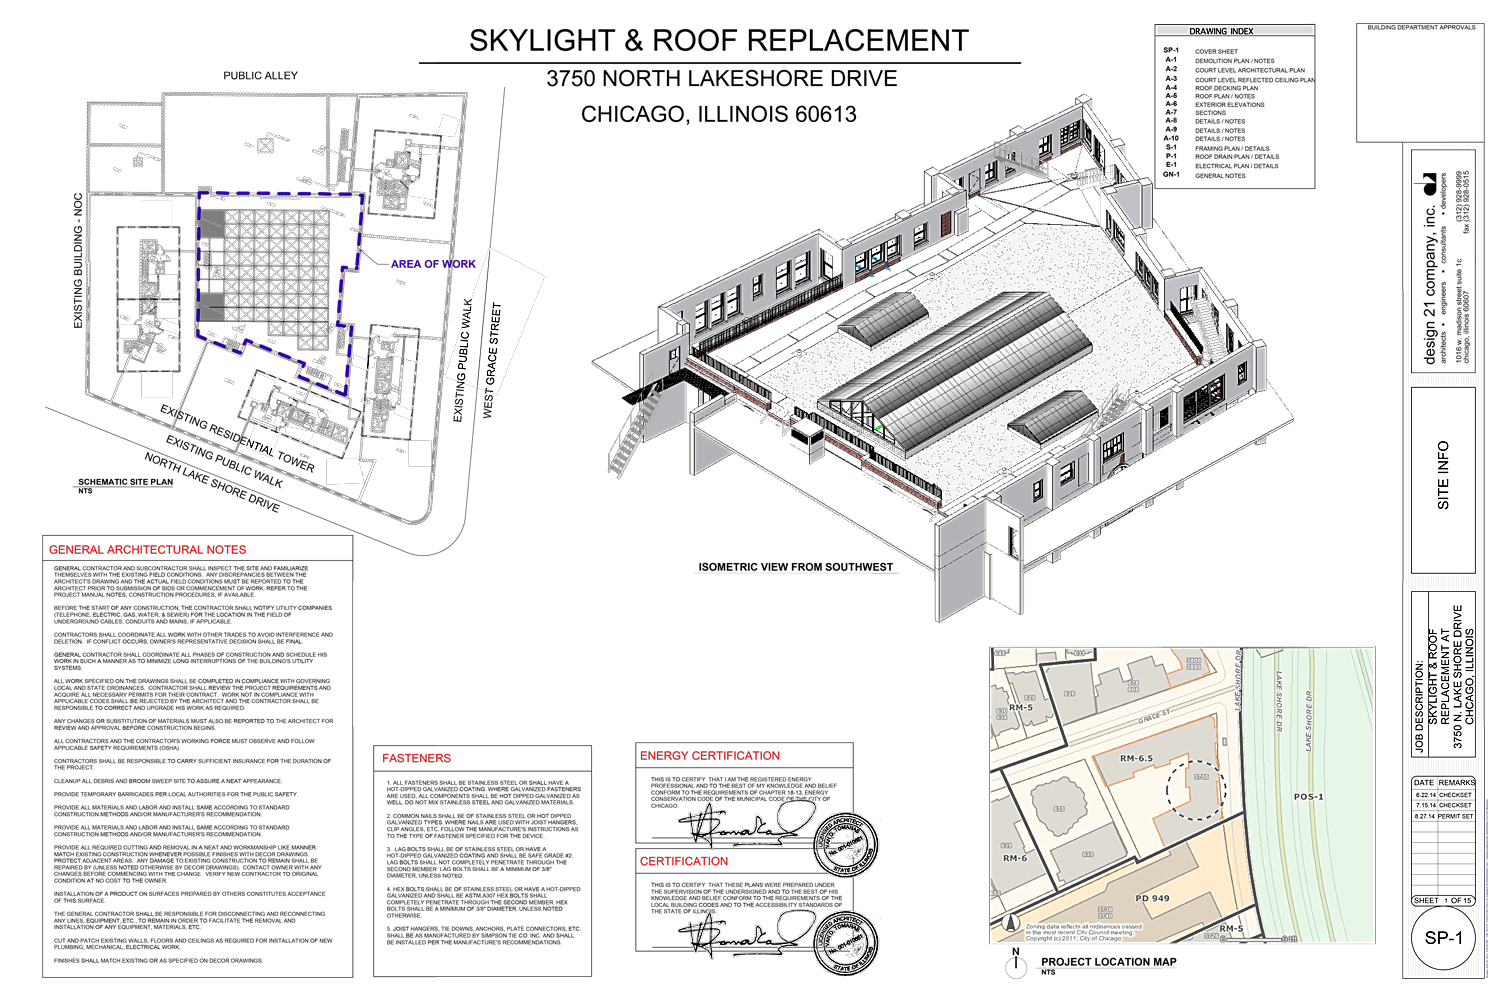 SP-1-[SITE-INFO].png